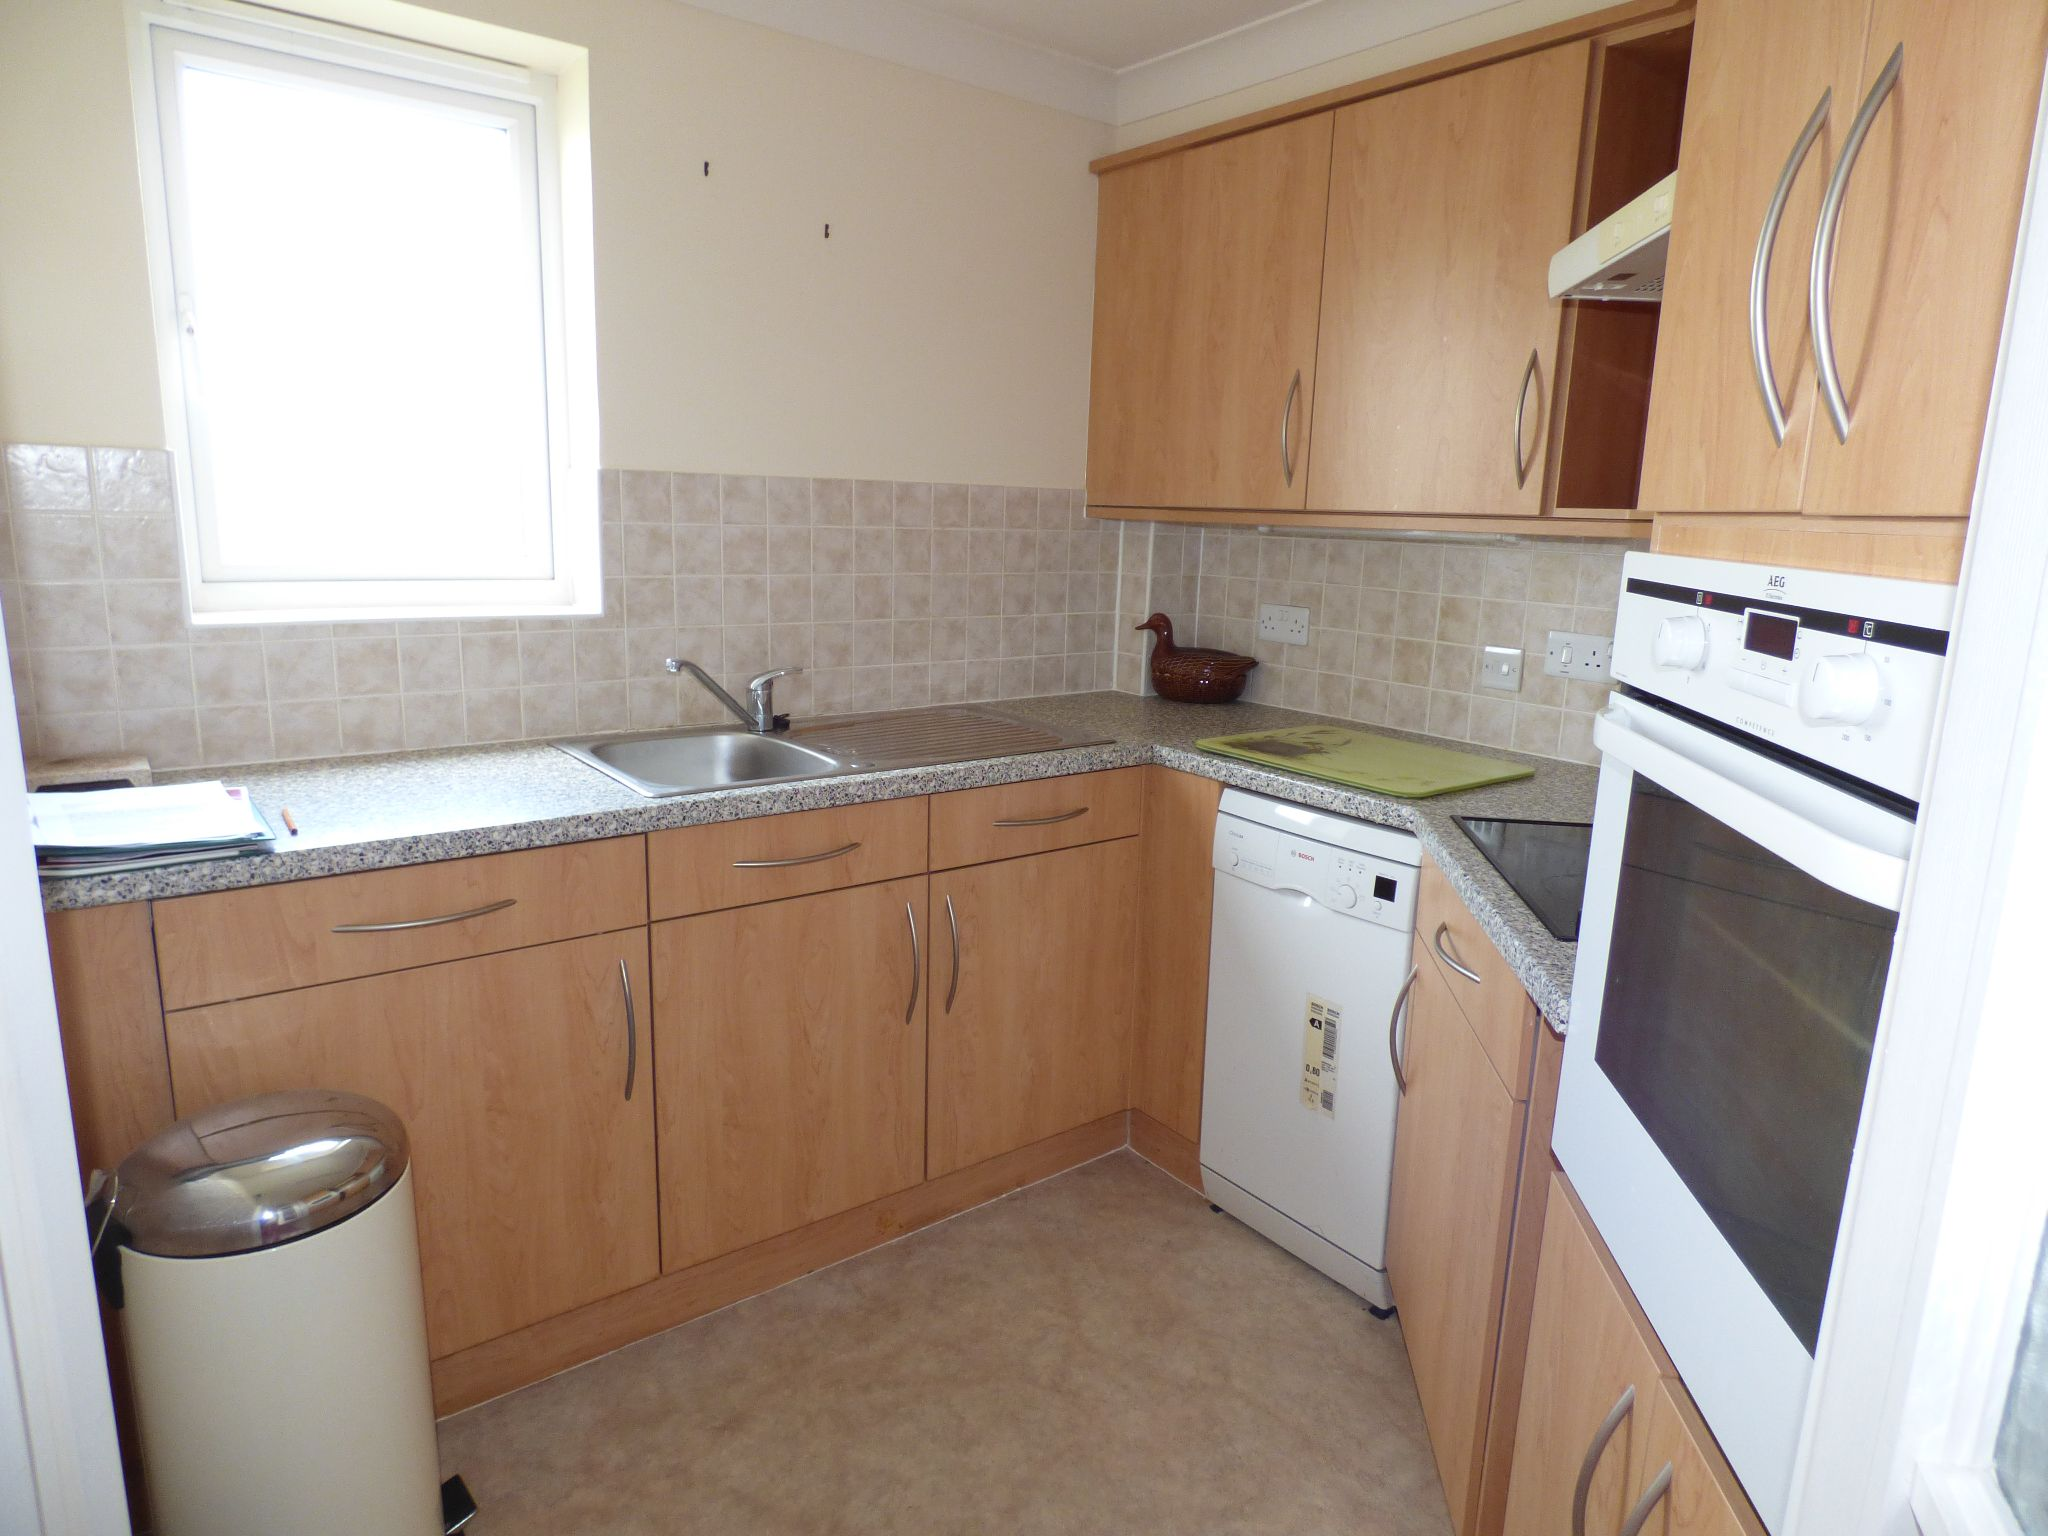 1 Bedroom Apartment Flat/apartment For Sale - Photograph 6